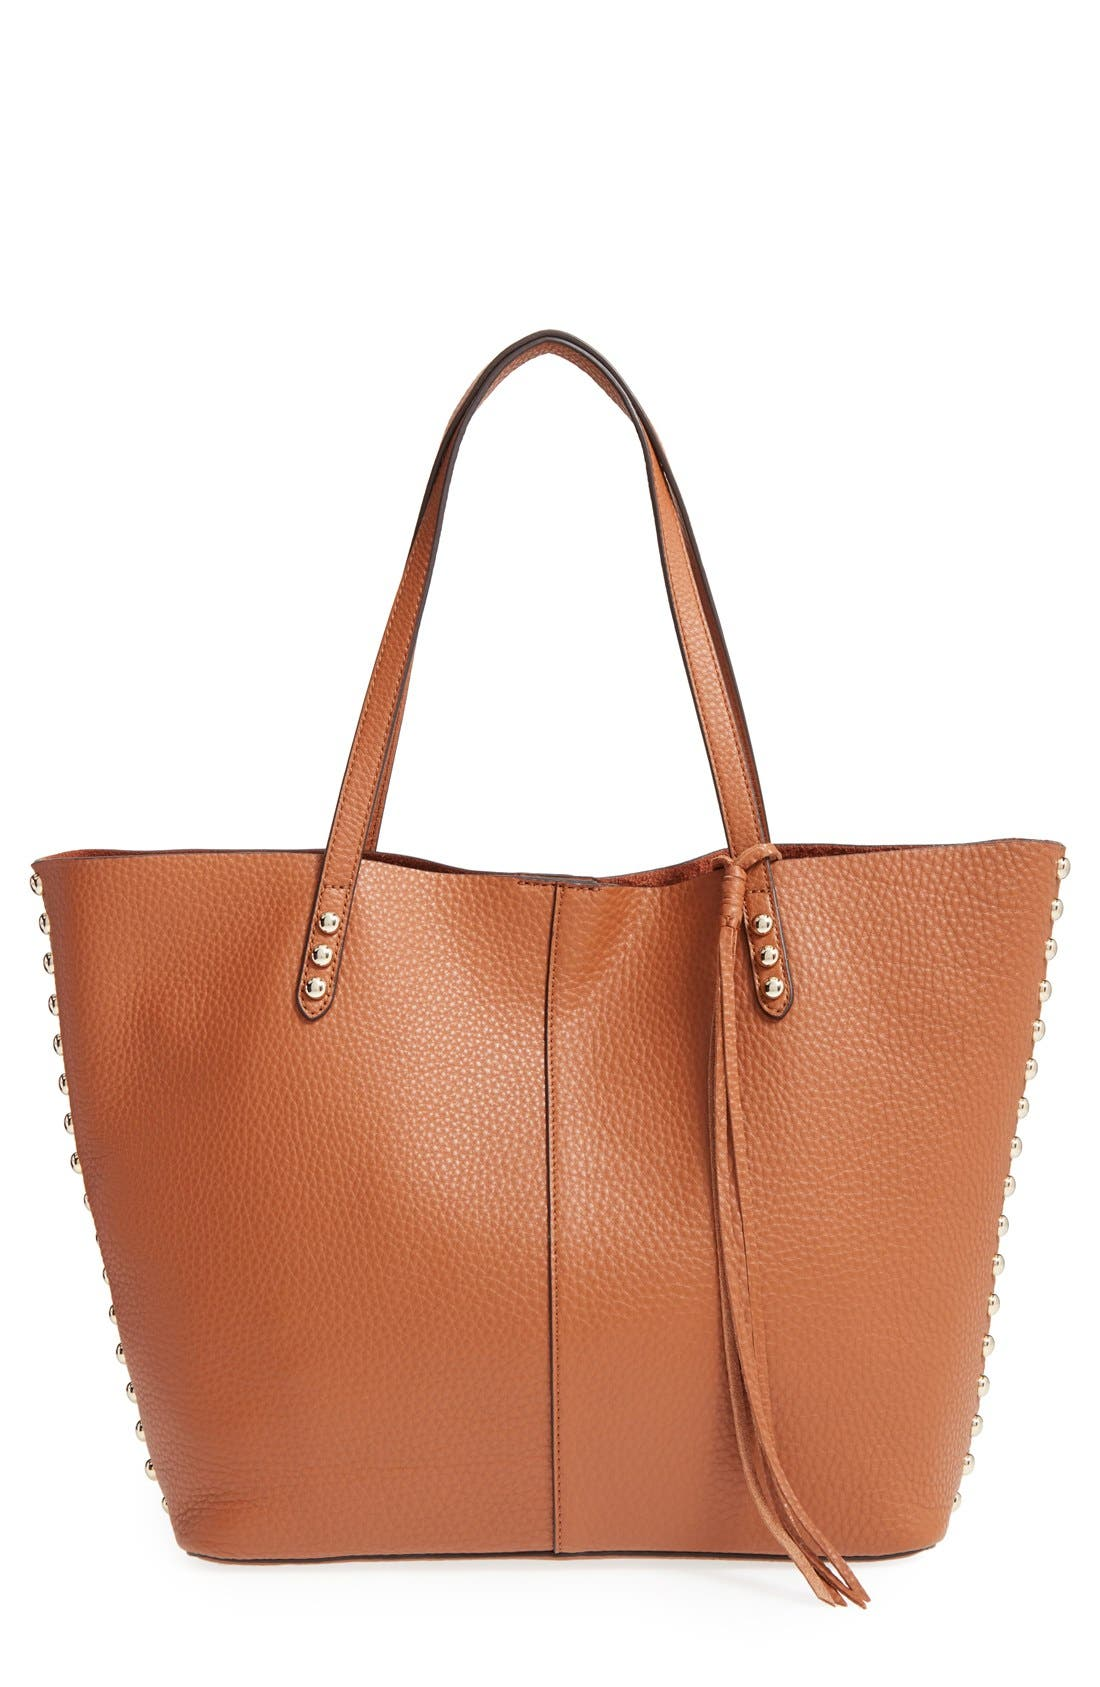 Alternate Image 1 Selected - Rebecca Minkoff Unlined Tote